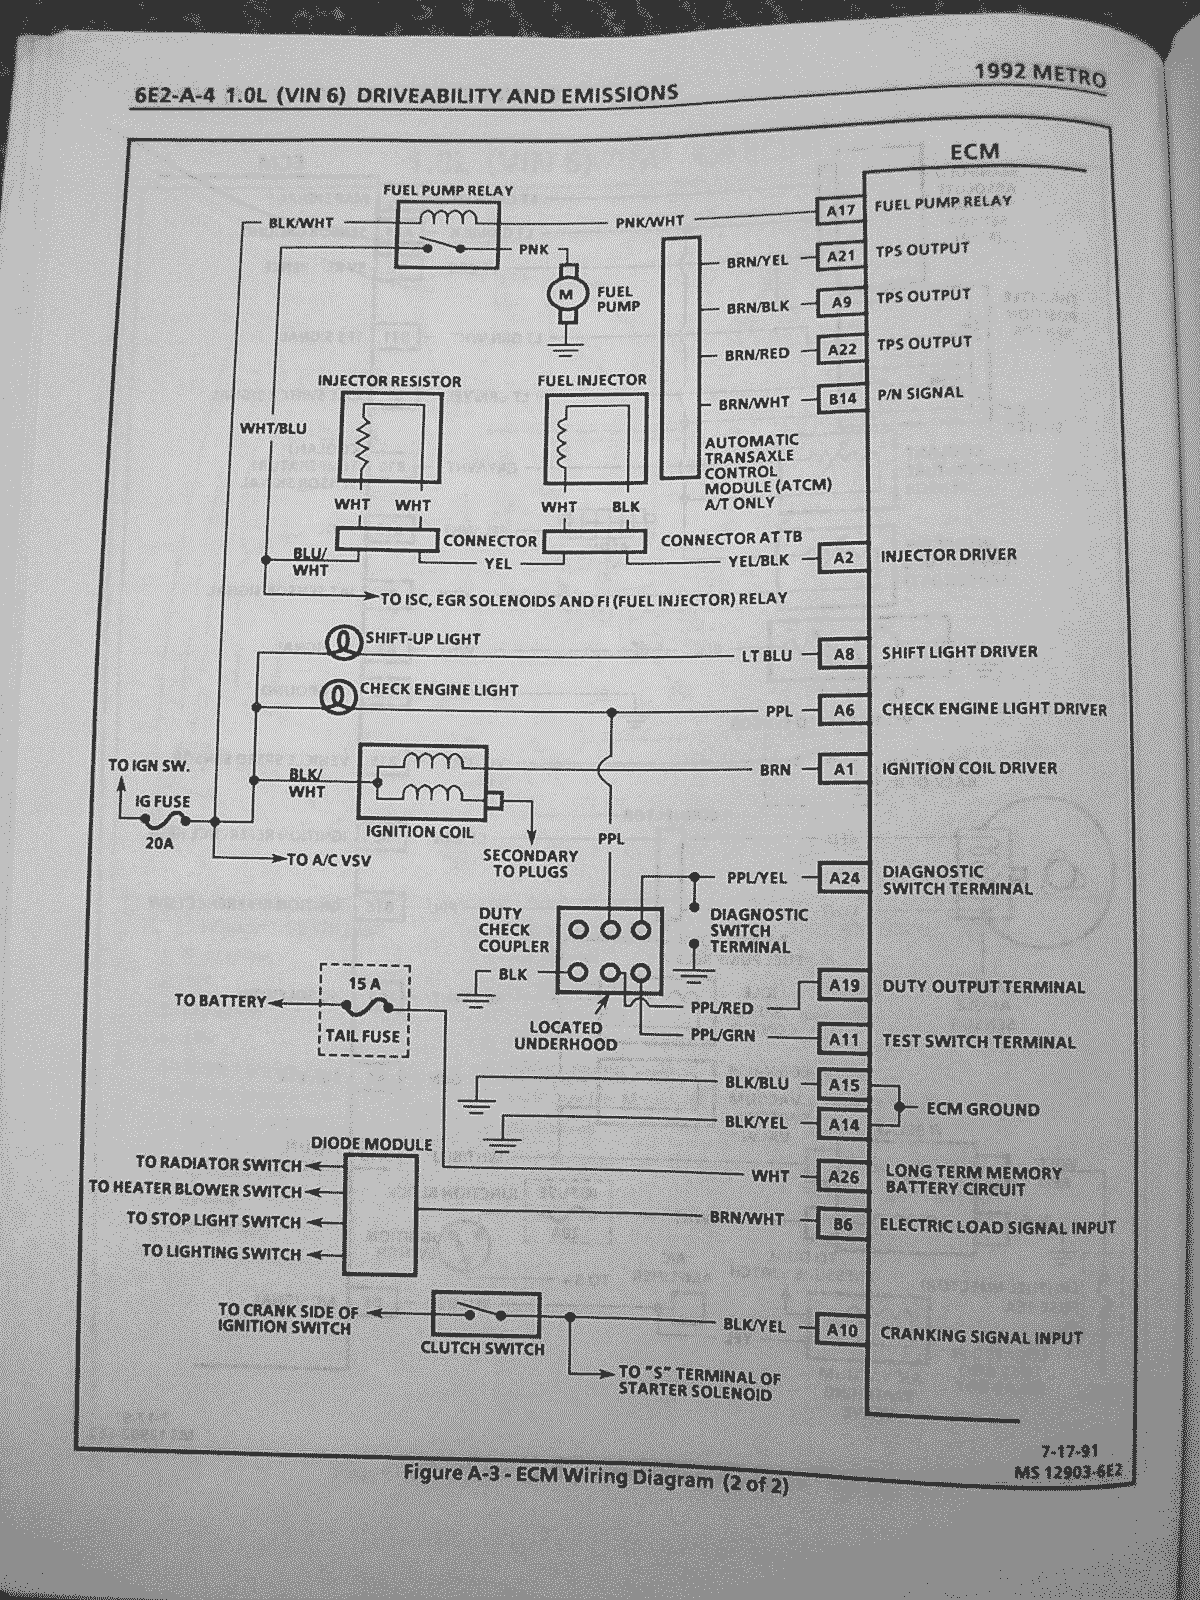 6e2 a 4 geo metro and suzuki swift wiring diagrams metroxfi com 1996 geo metro fuse box diagram at eliteediting.co